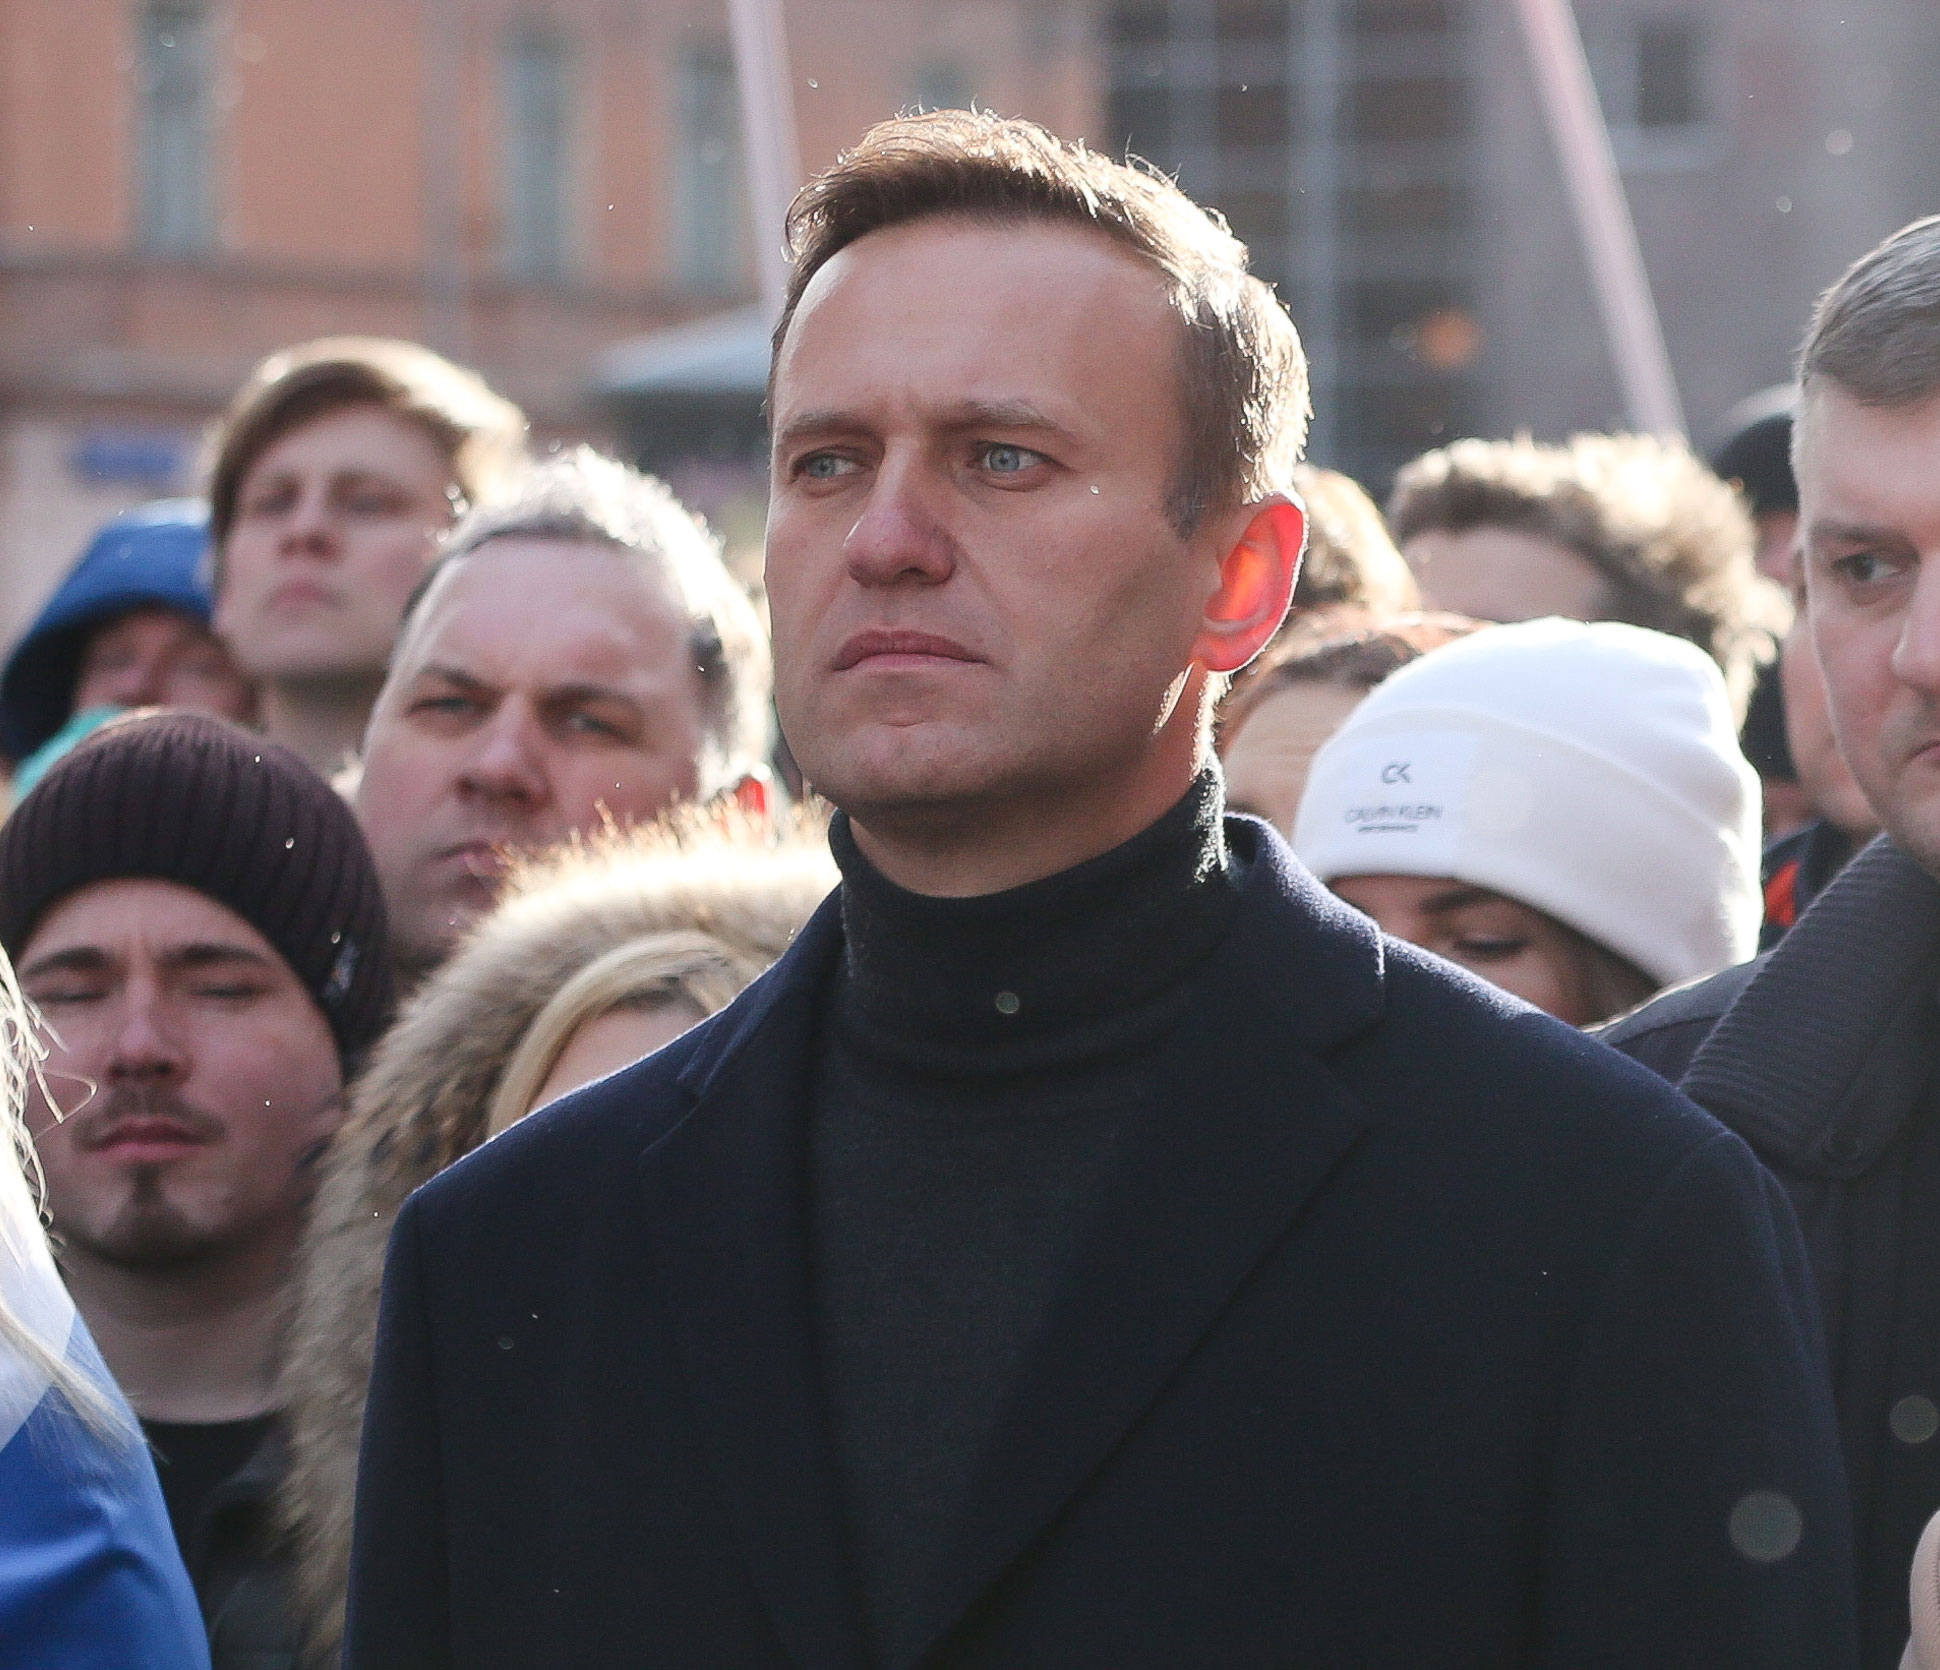 Alexey Navalny, Russian opposition leader, walks with demonstrators during a rally in Moscow on February 29, 2019.